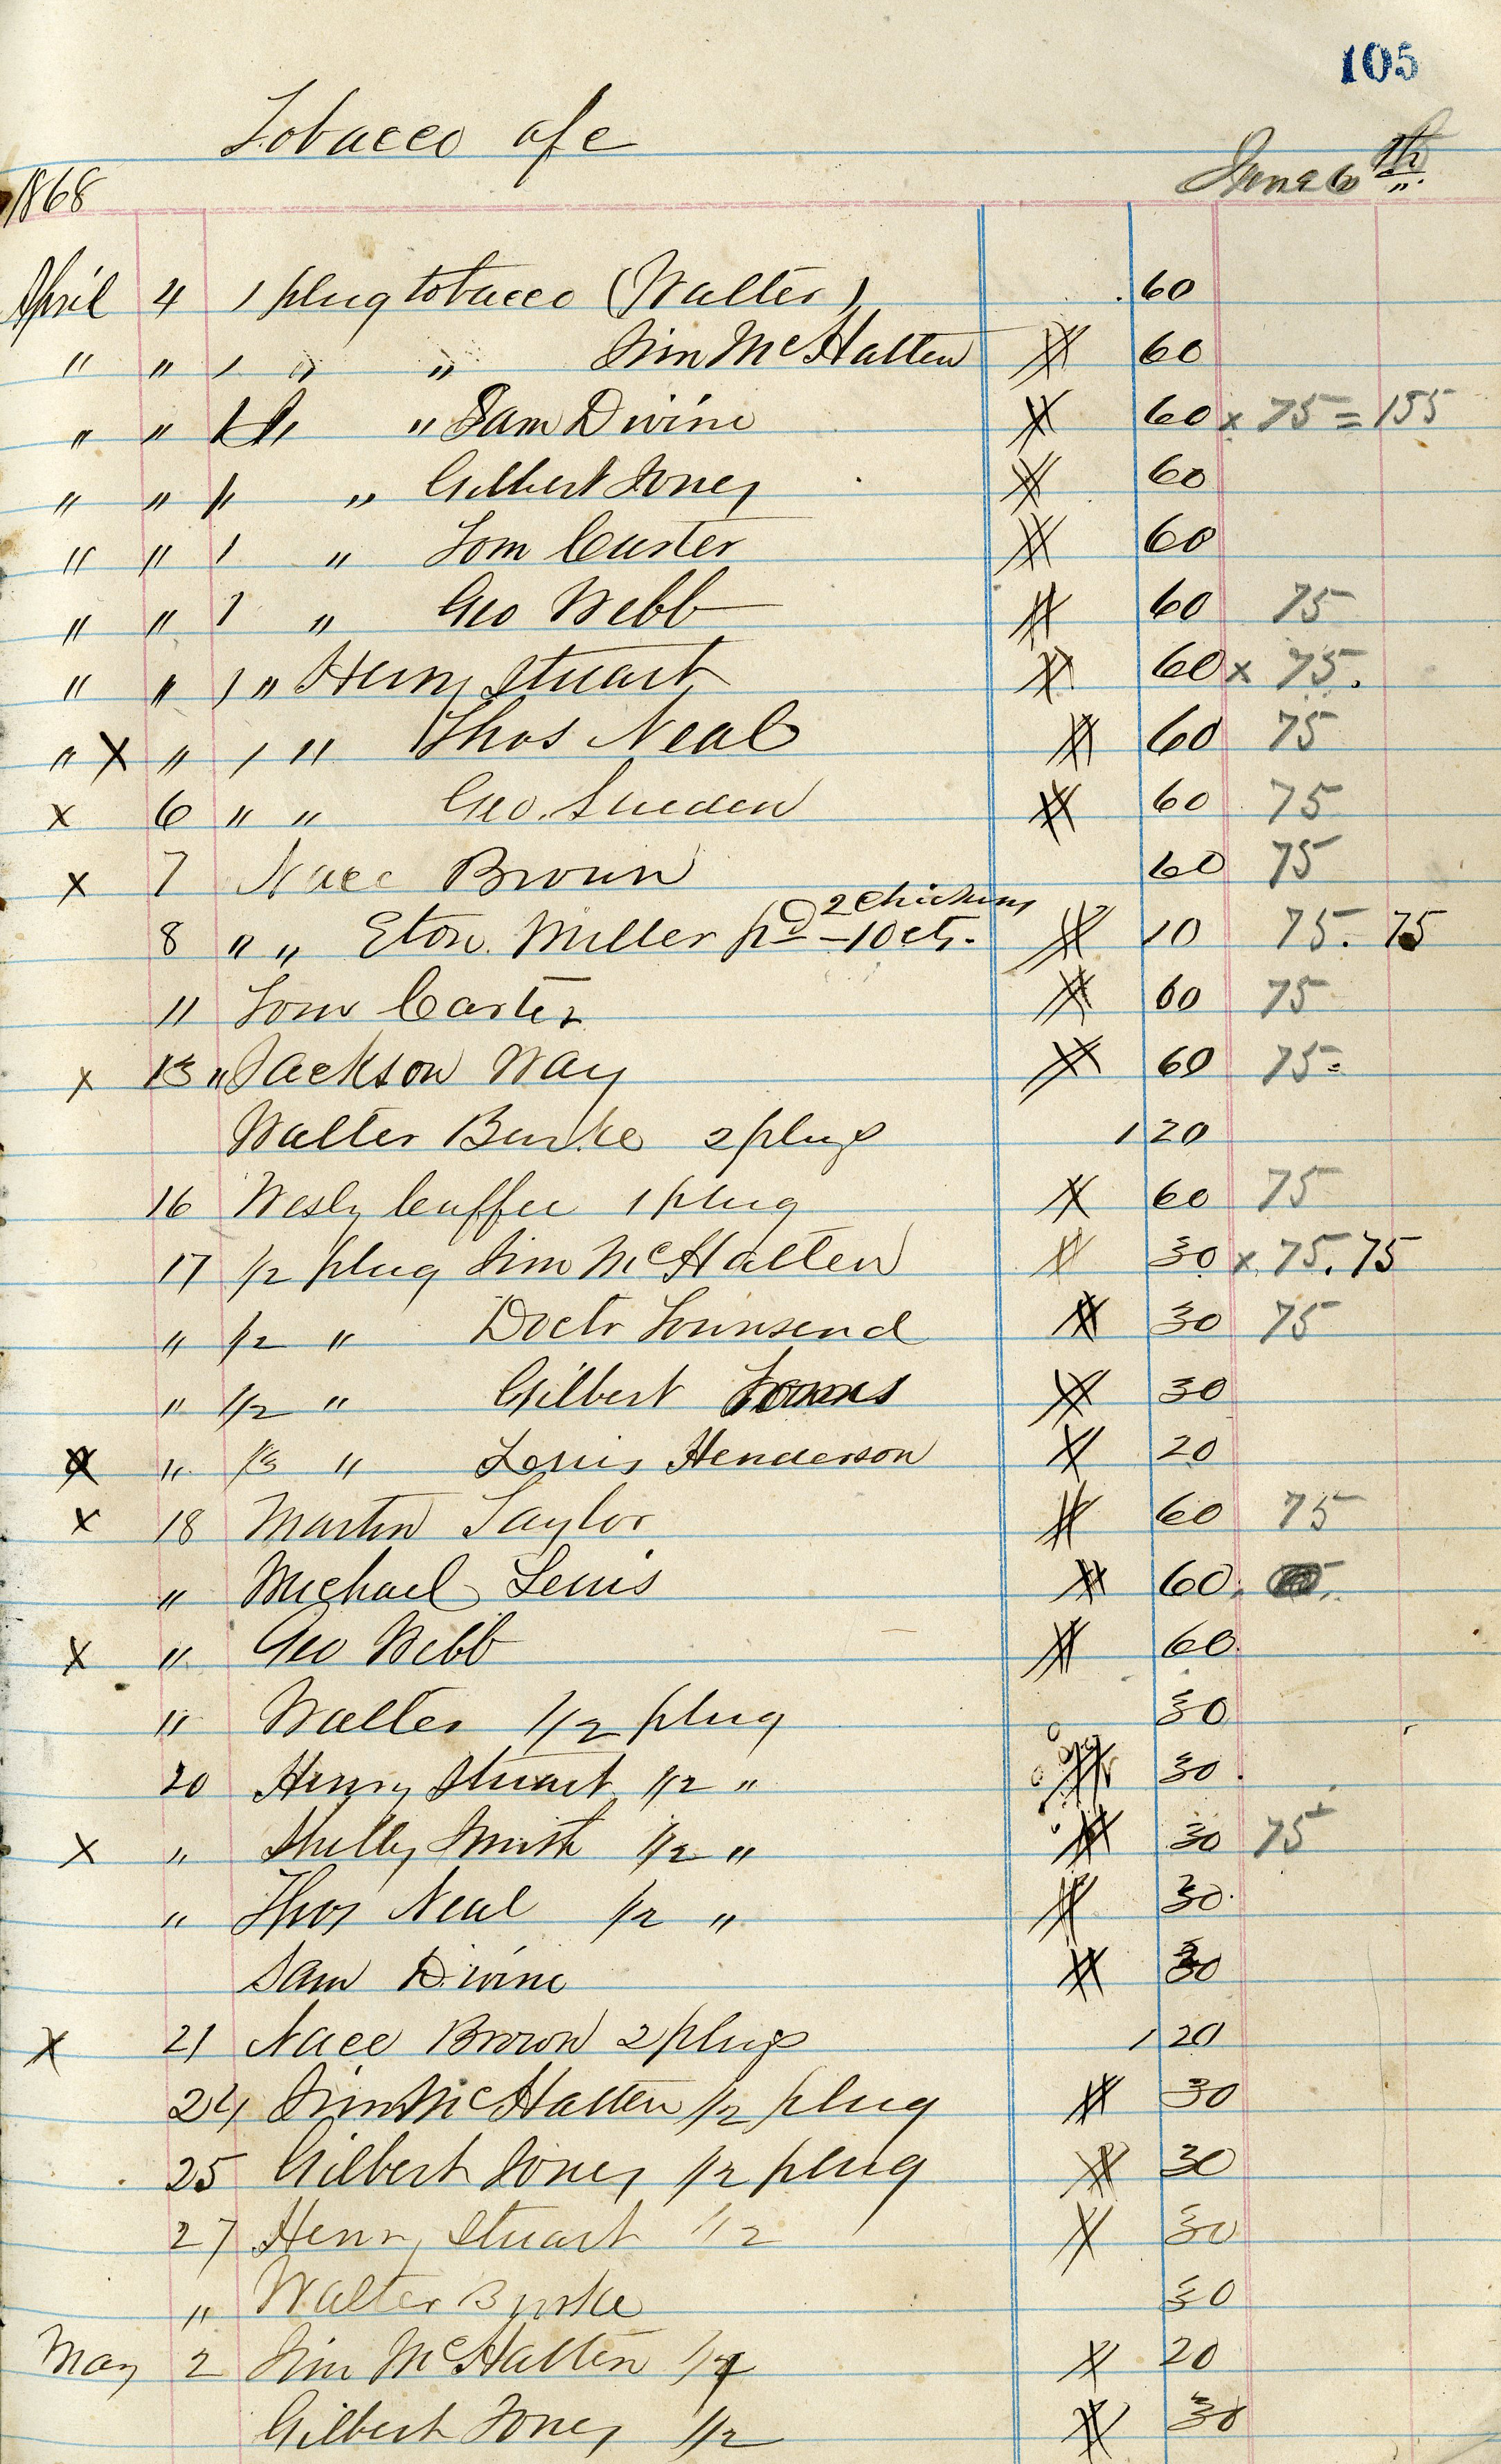 Among the business records of Lammermoor Plantation is what appears to be the account book of the plantation's store. This page details tobacco sold by the store. Many--perhaps all--of the purchasers were freedmen employed by the plantation.